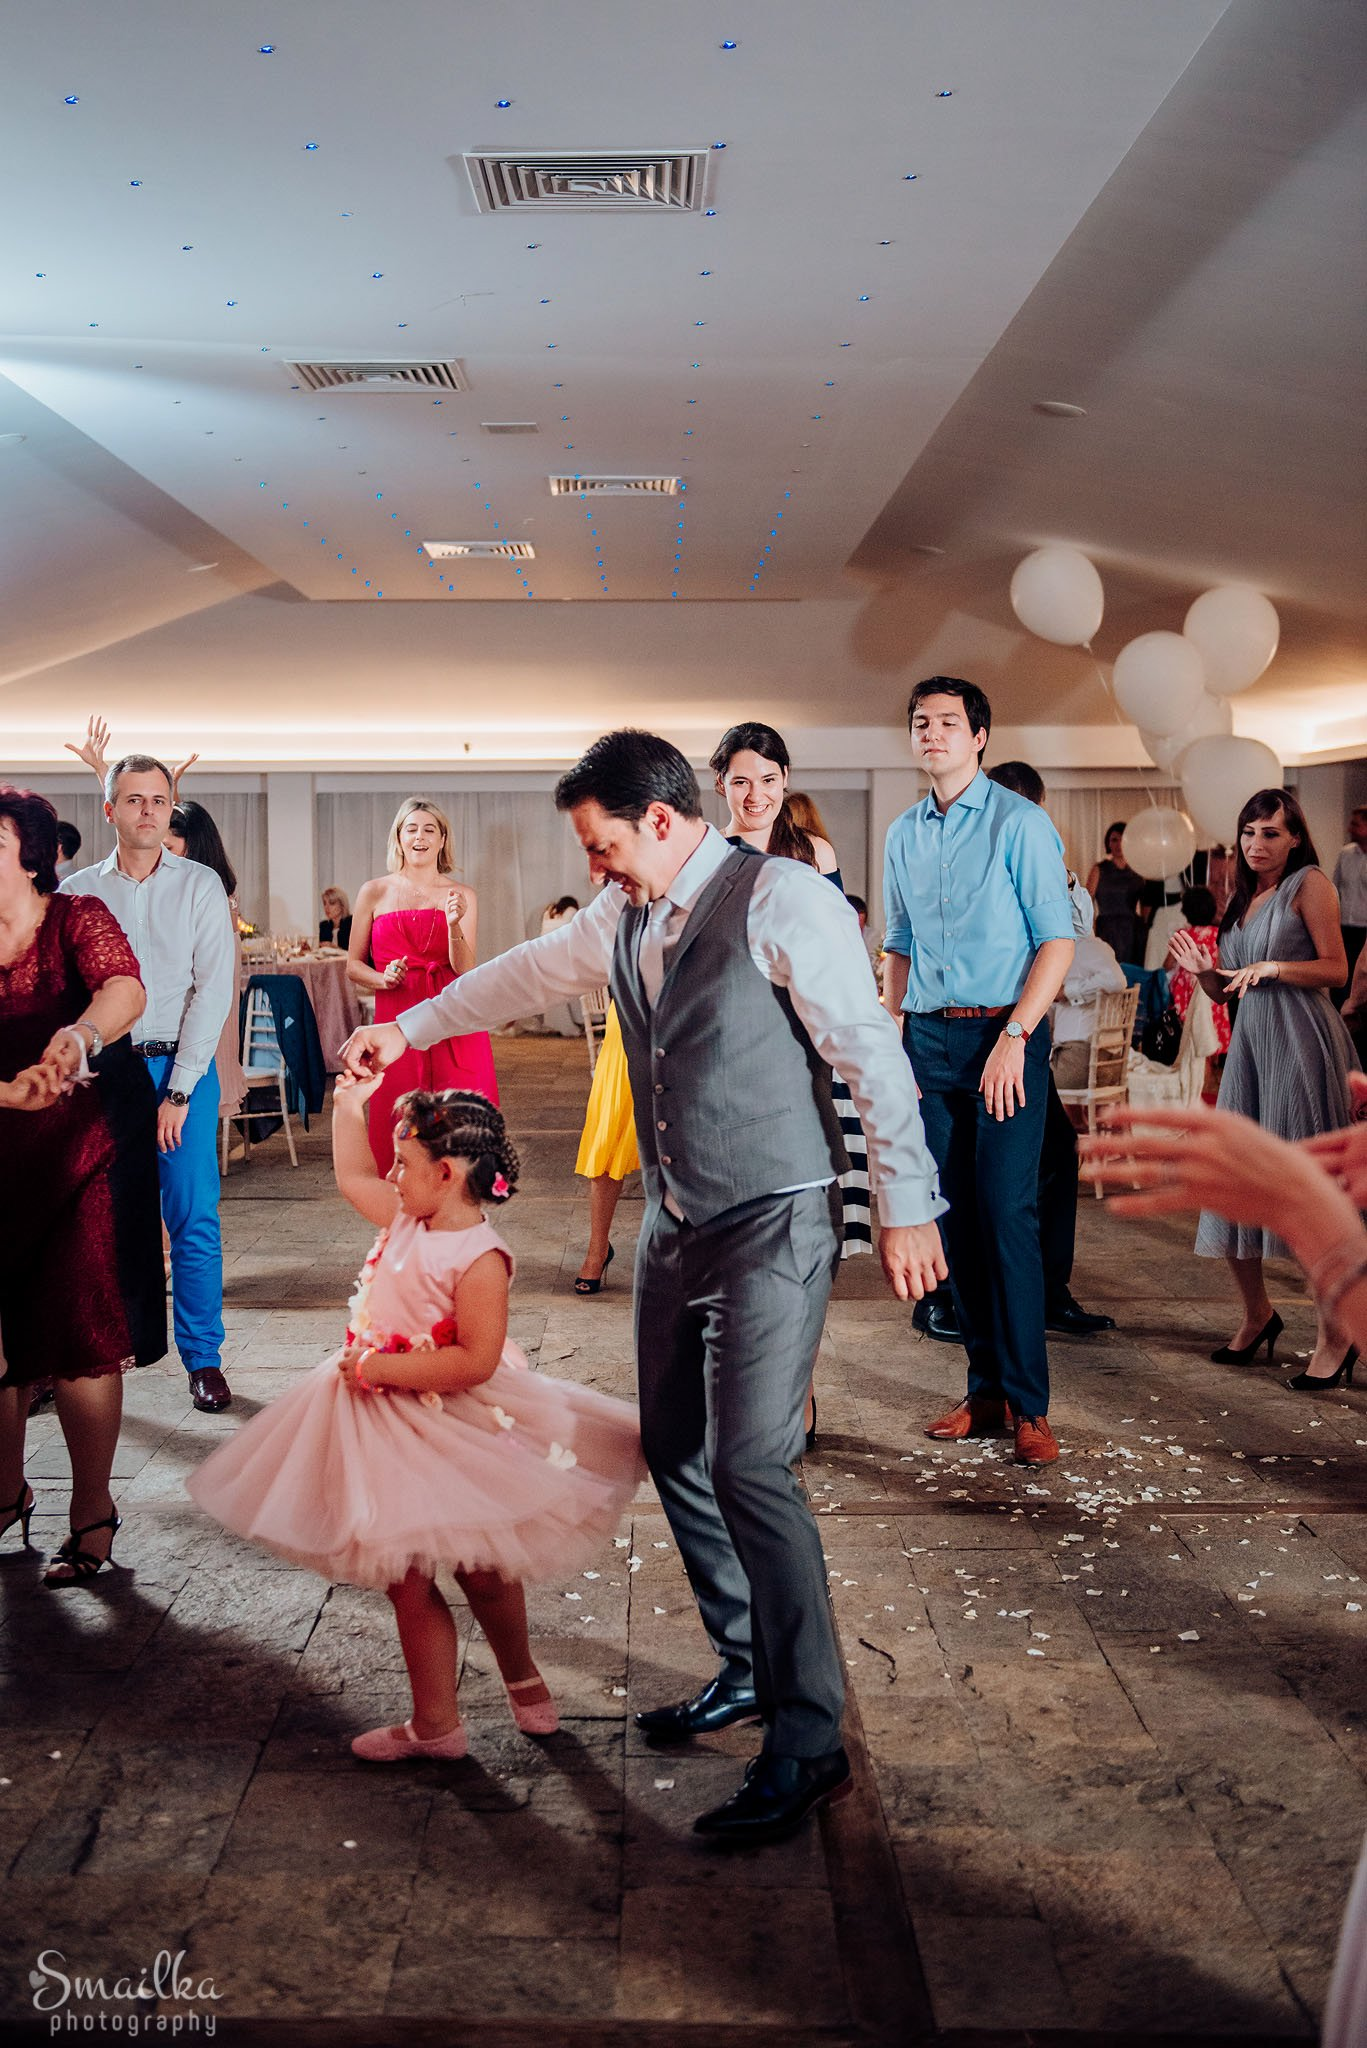 Groom dancing with a kid